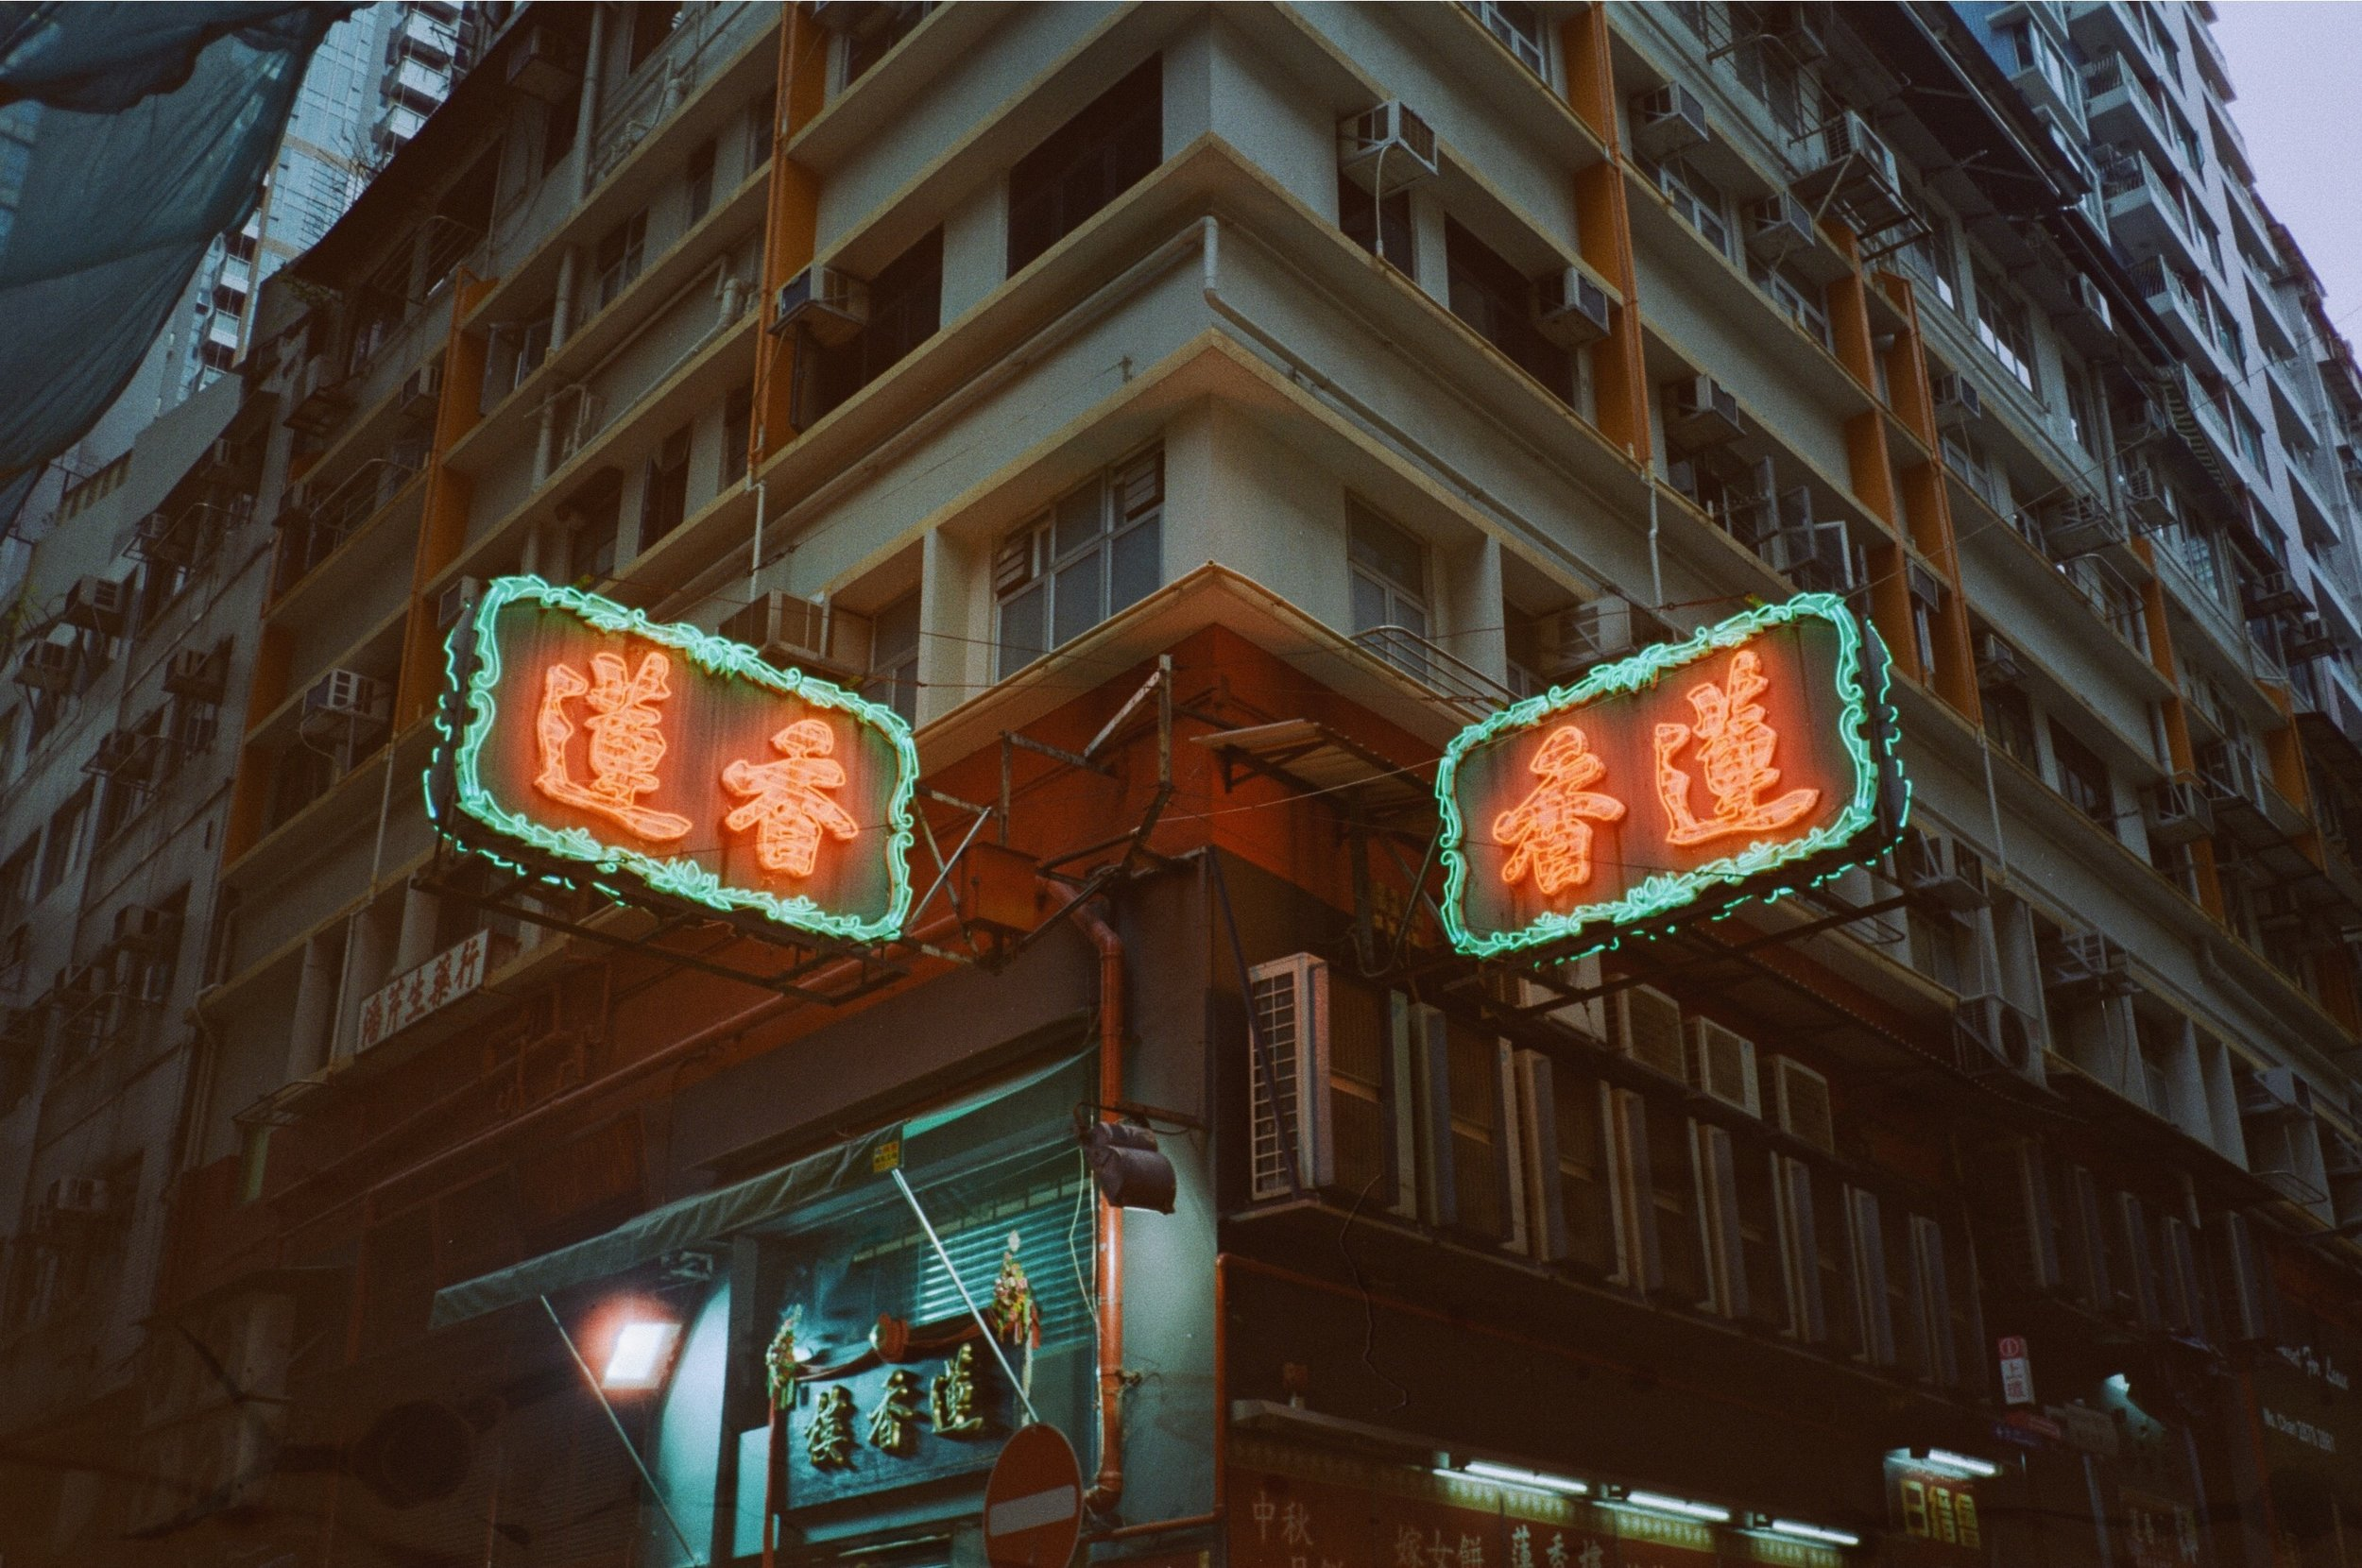 hong kong lights.JPG